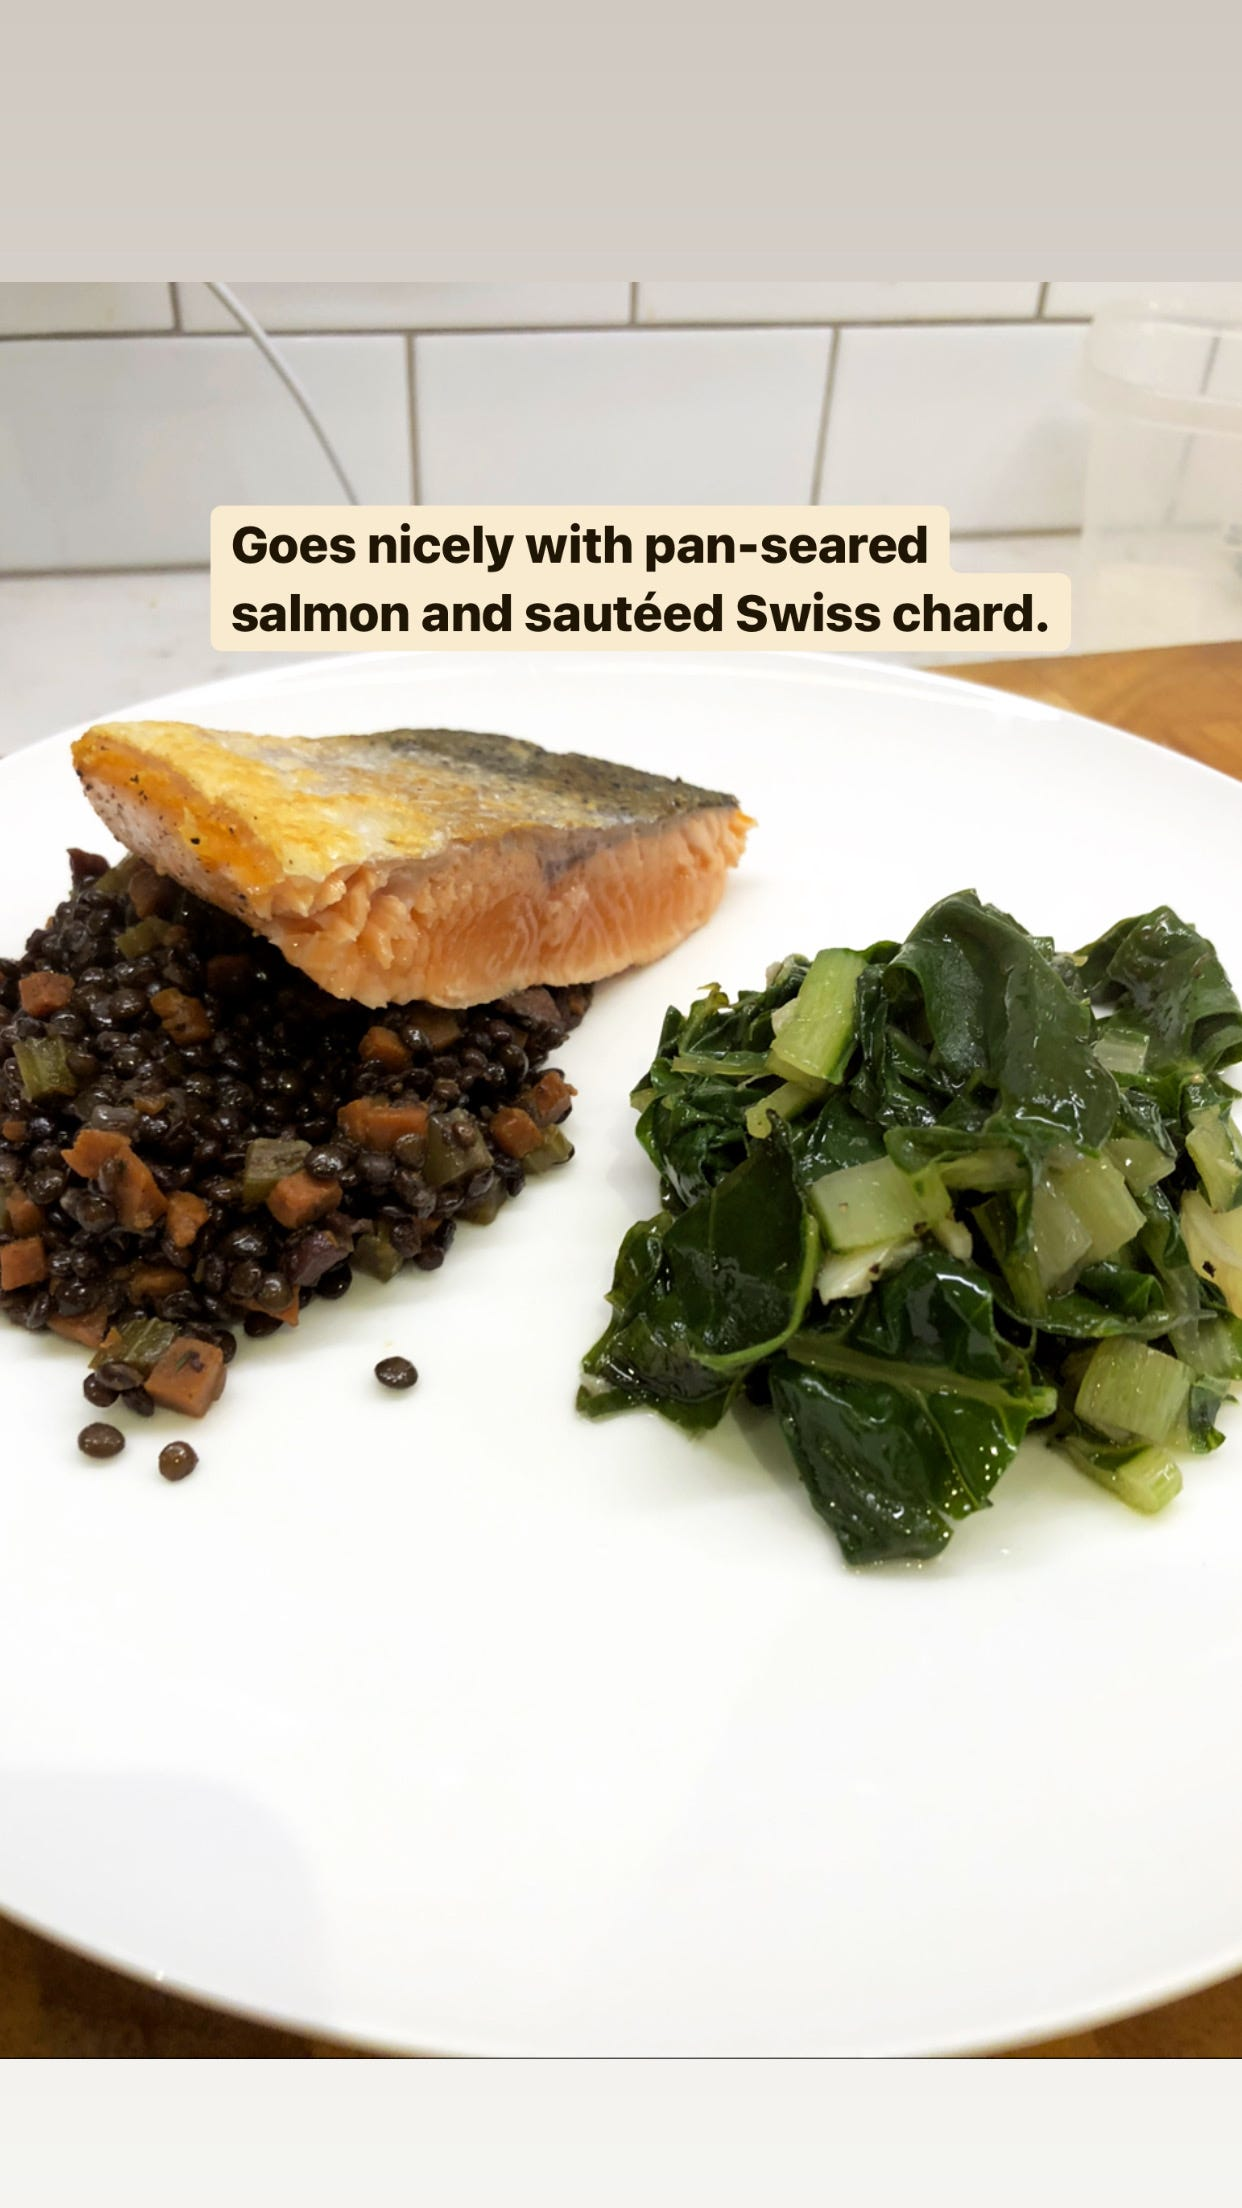 Lentils served with salmon and Swiss chard